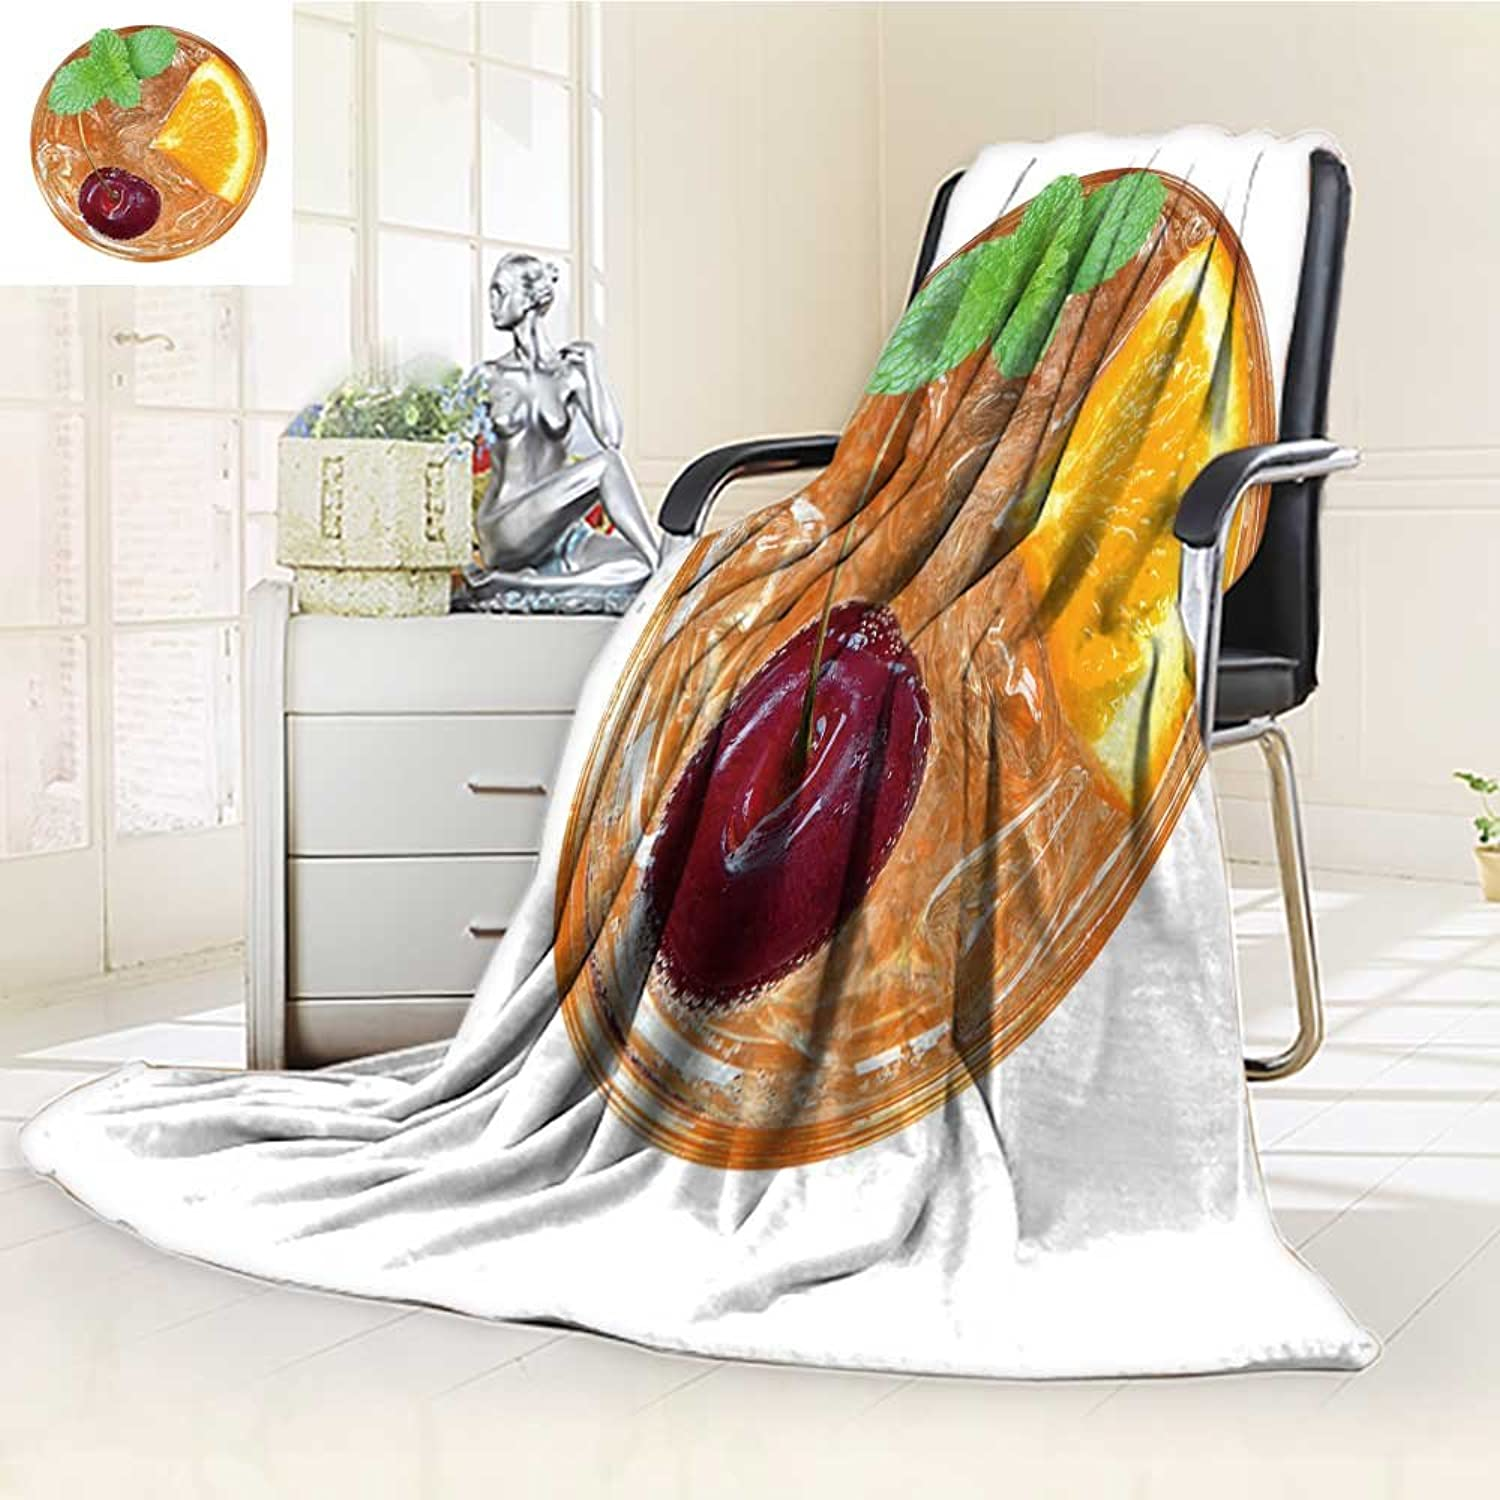 Decorative Throw Blanket UltraPlush Comfort orange Juice Cocktail with Cherry and Mint top View Isolated on White backgroun Soft, colorful, Oversized   Home, Couch, Outdoor, Travel Use(60 x 50 )